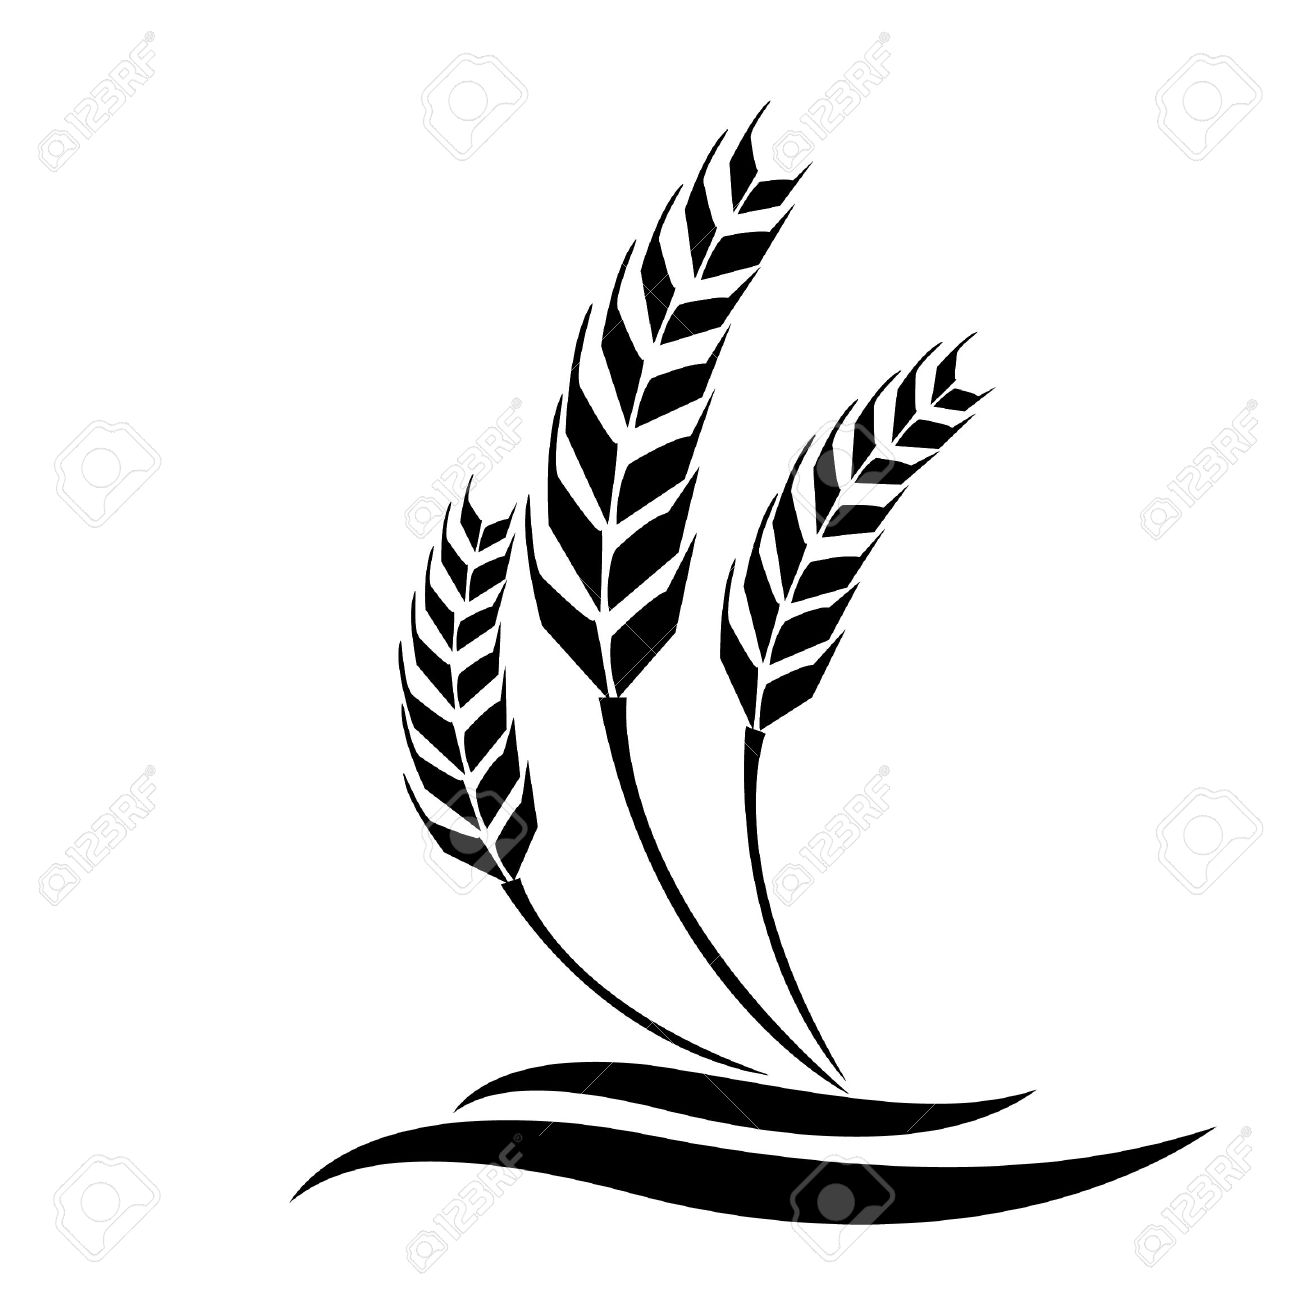 wheat vector royalty free cliparts vectors and stock rh 123rf com wheat vector art free download wheat vector download